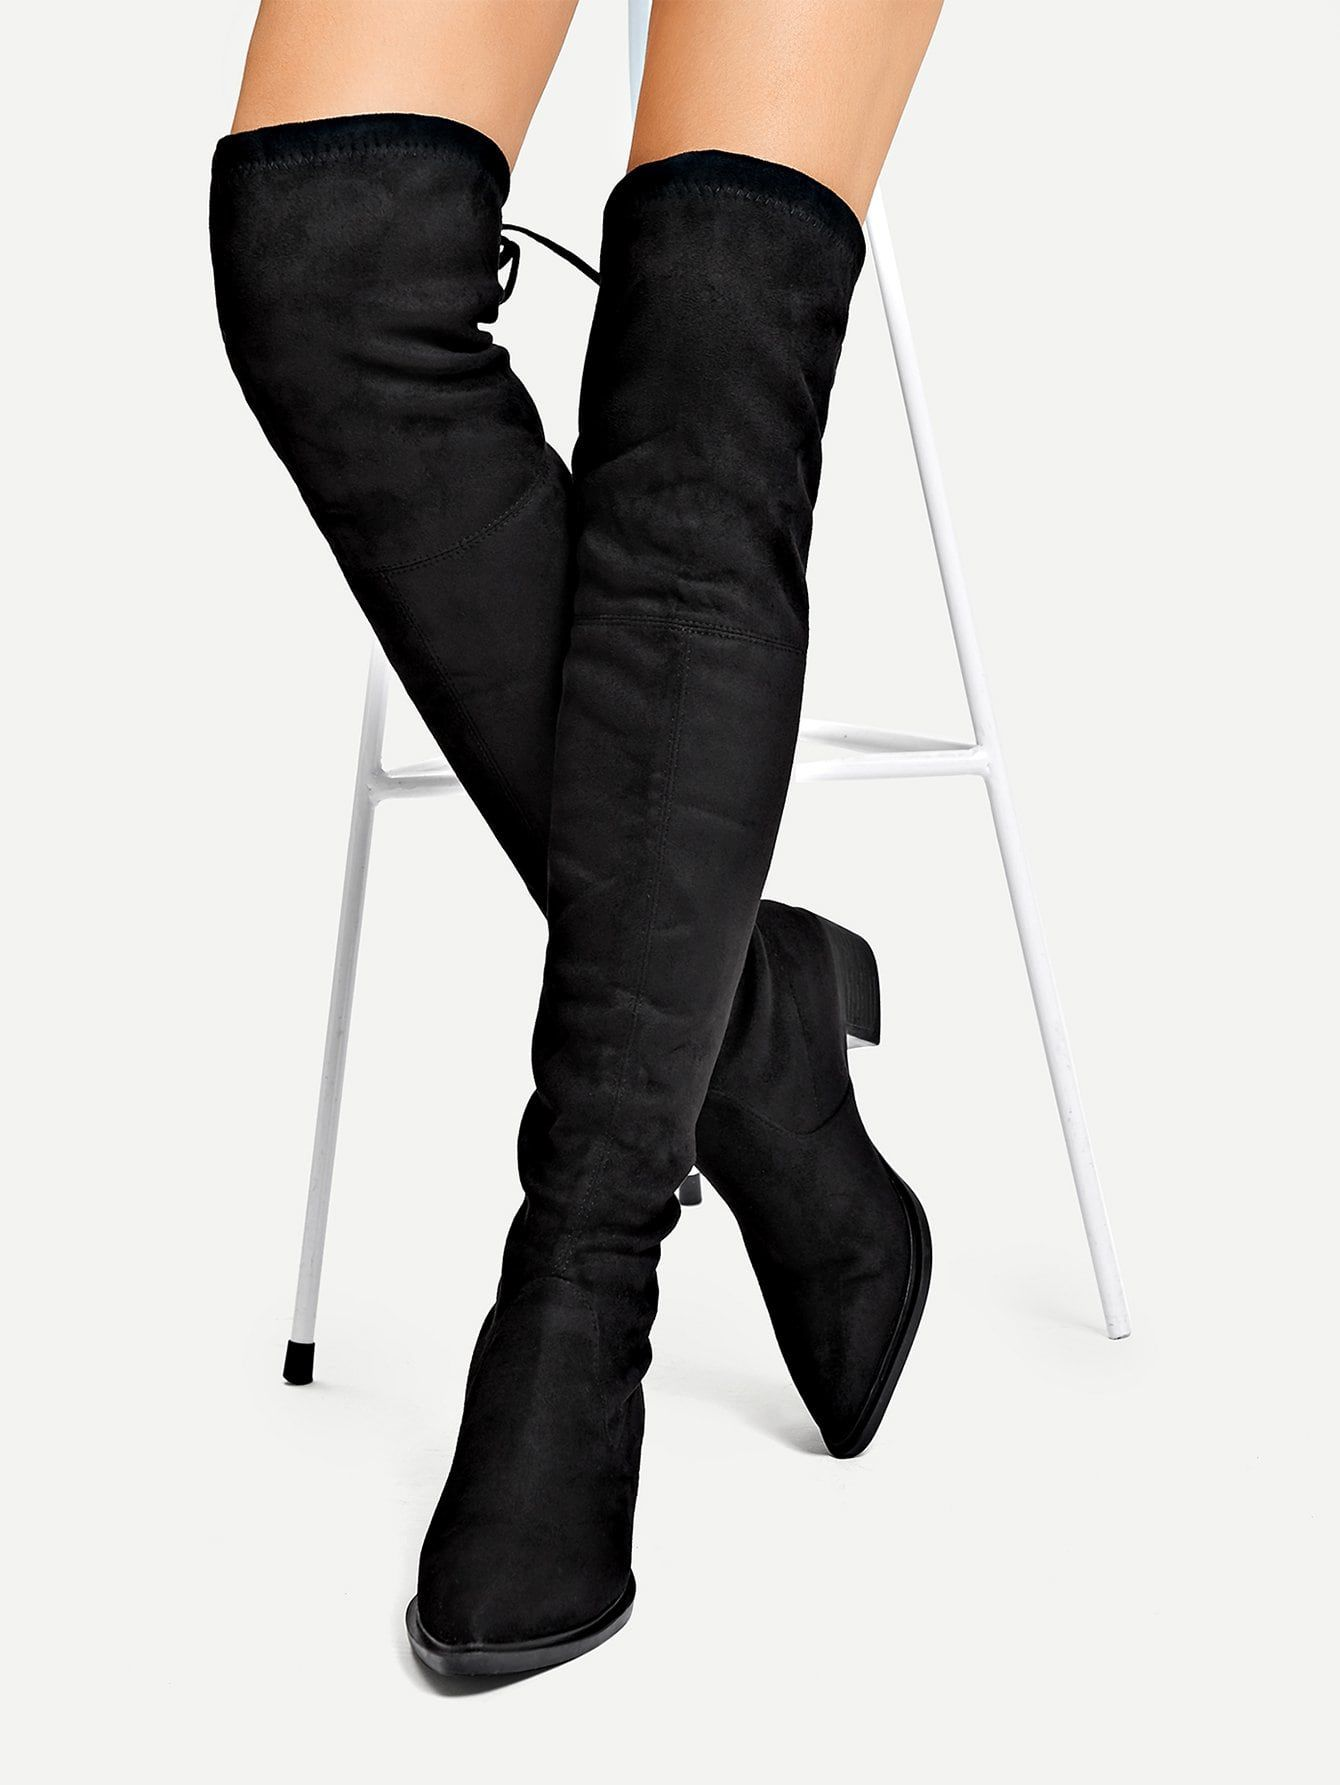 ada77f91b6 Casual Point Toe OTK/Thigh High No zipper Black Low Heel Suede Over The  Knee Boots